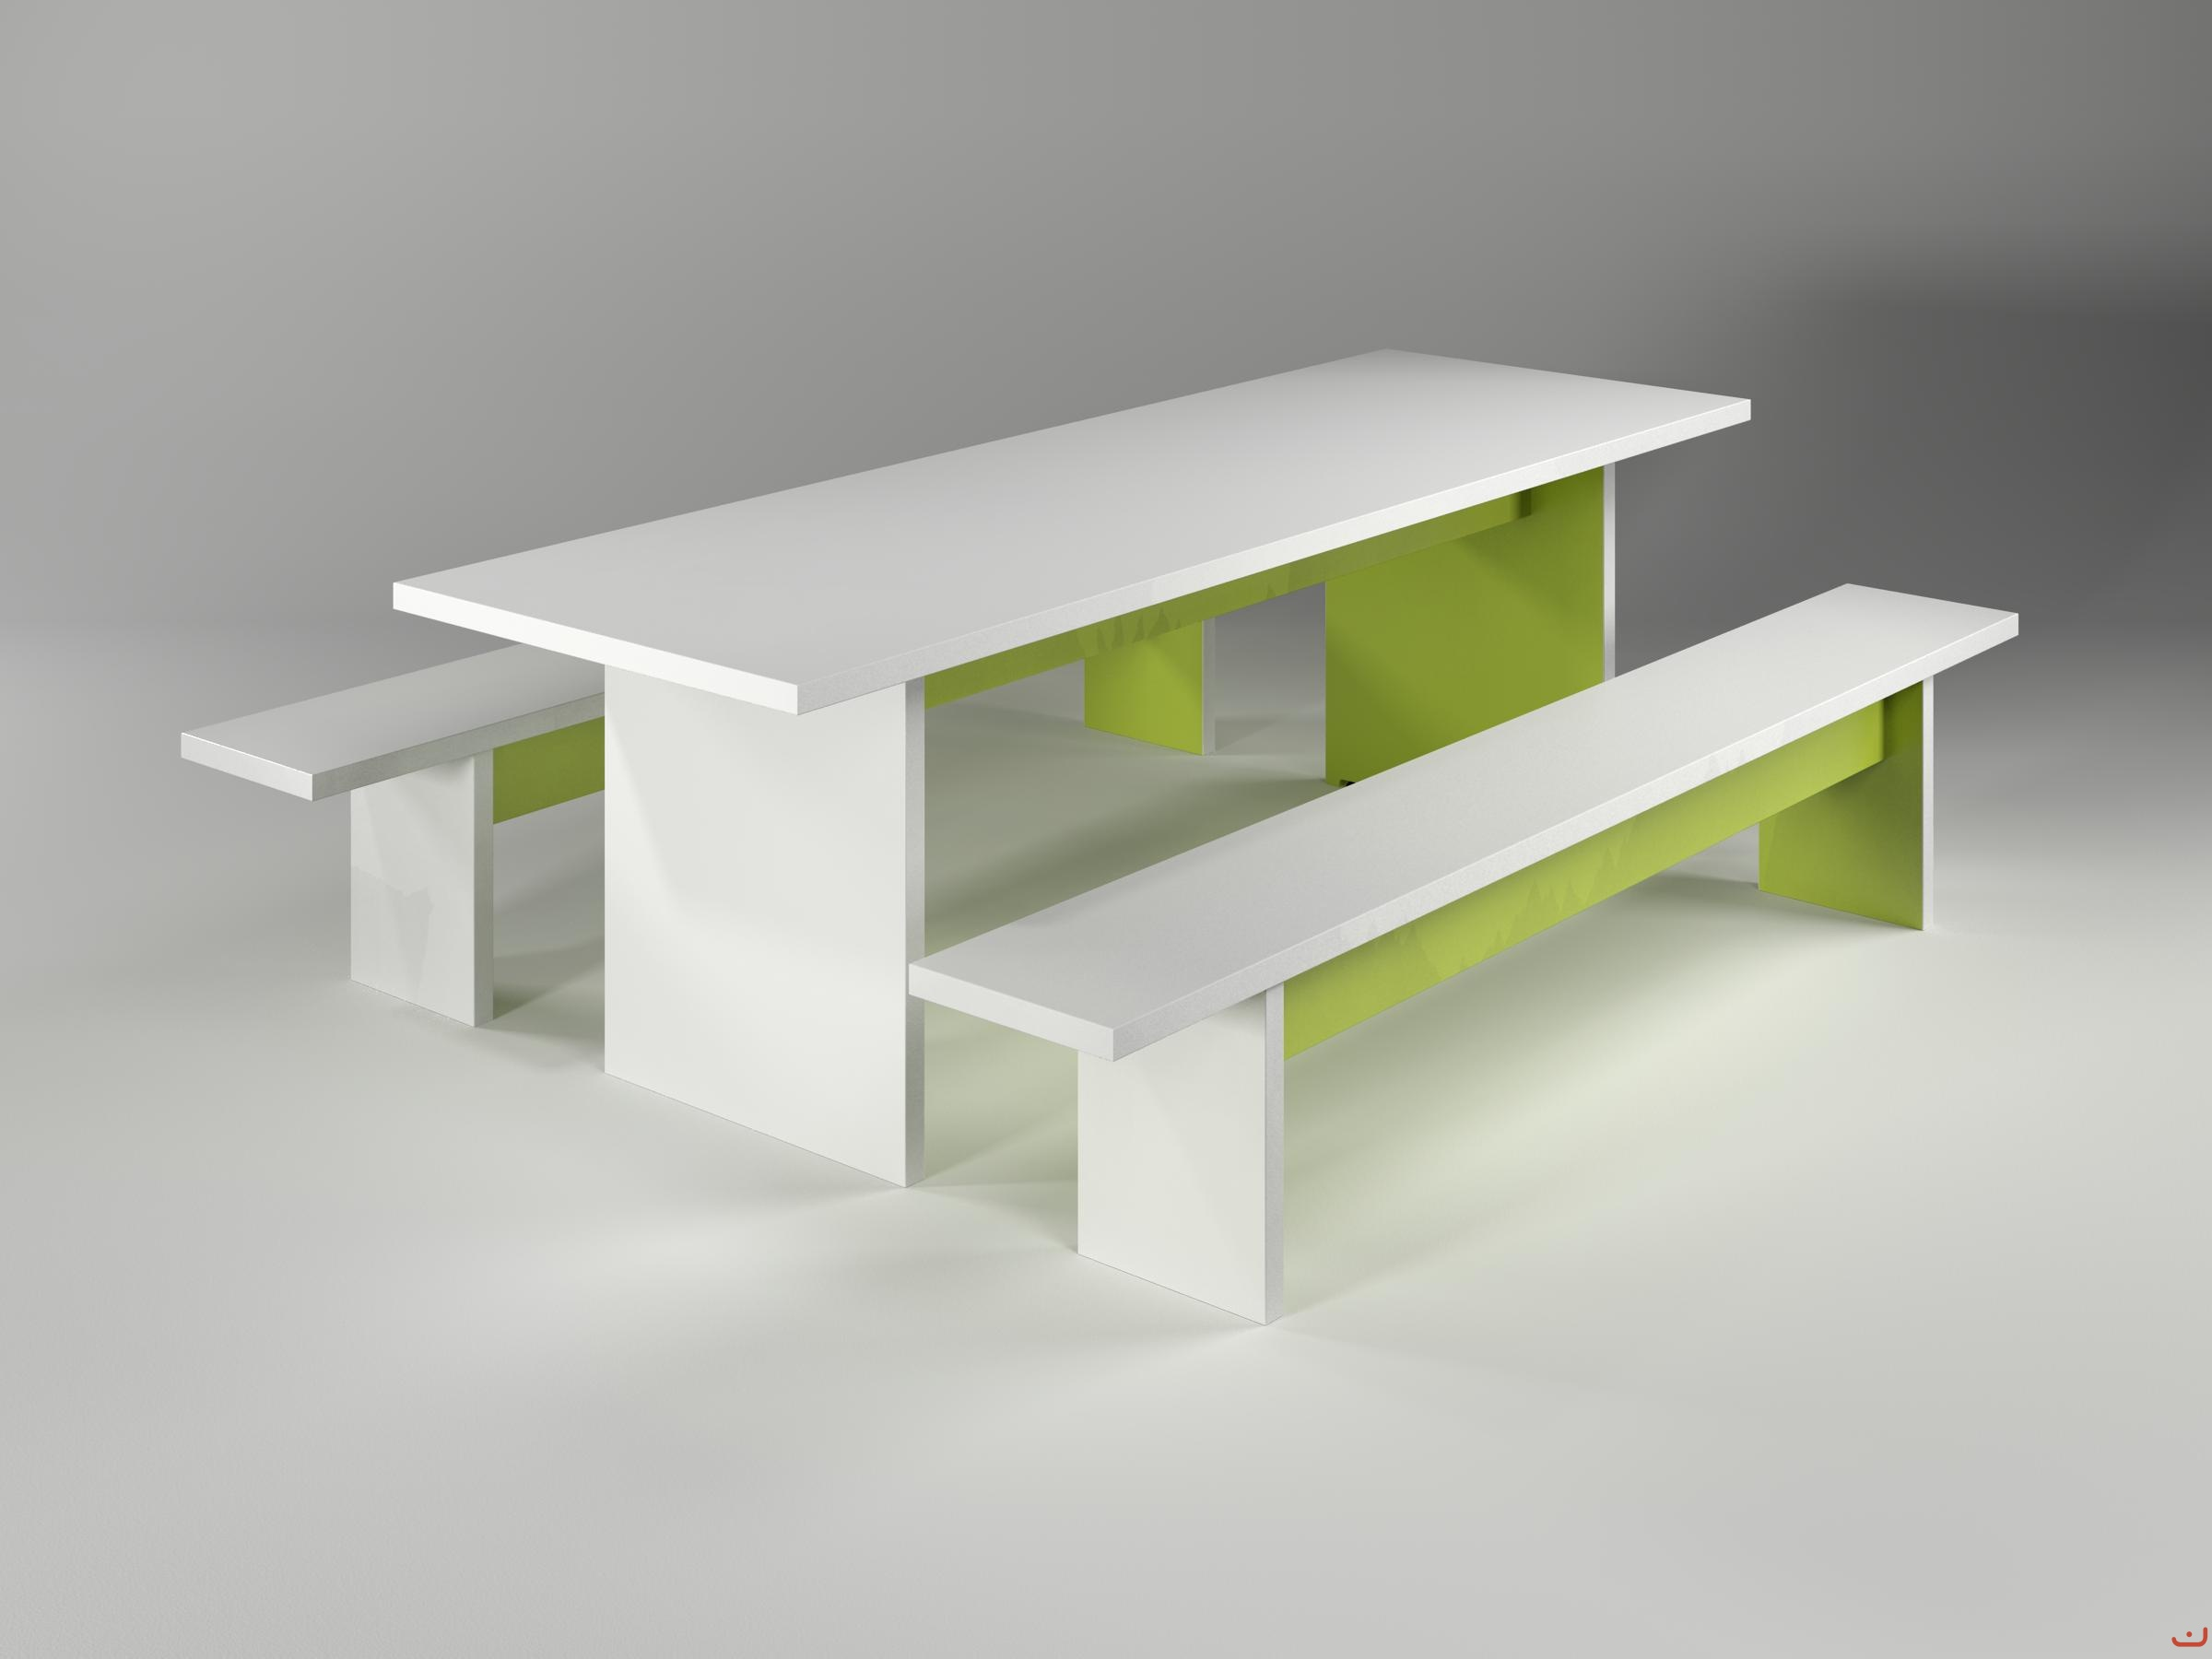 Jive-Canteen-Furniture-Green-White-ABS-Edging